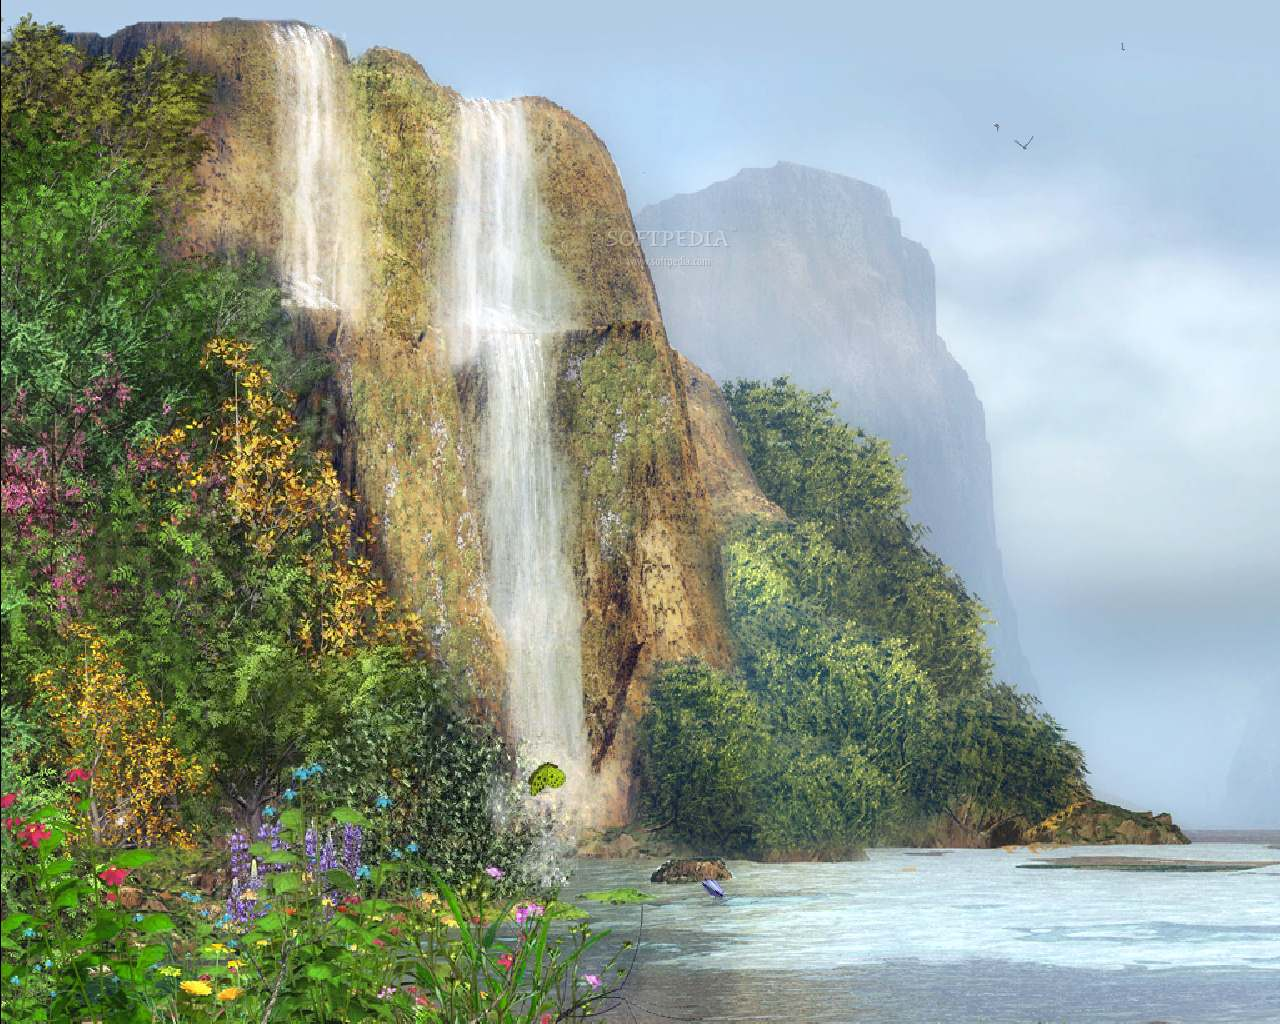 The word cartoon animated waterfall screensaver 1280x1024